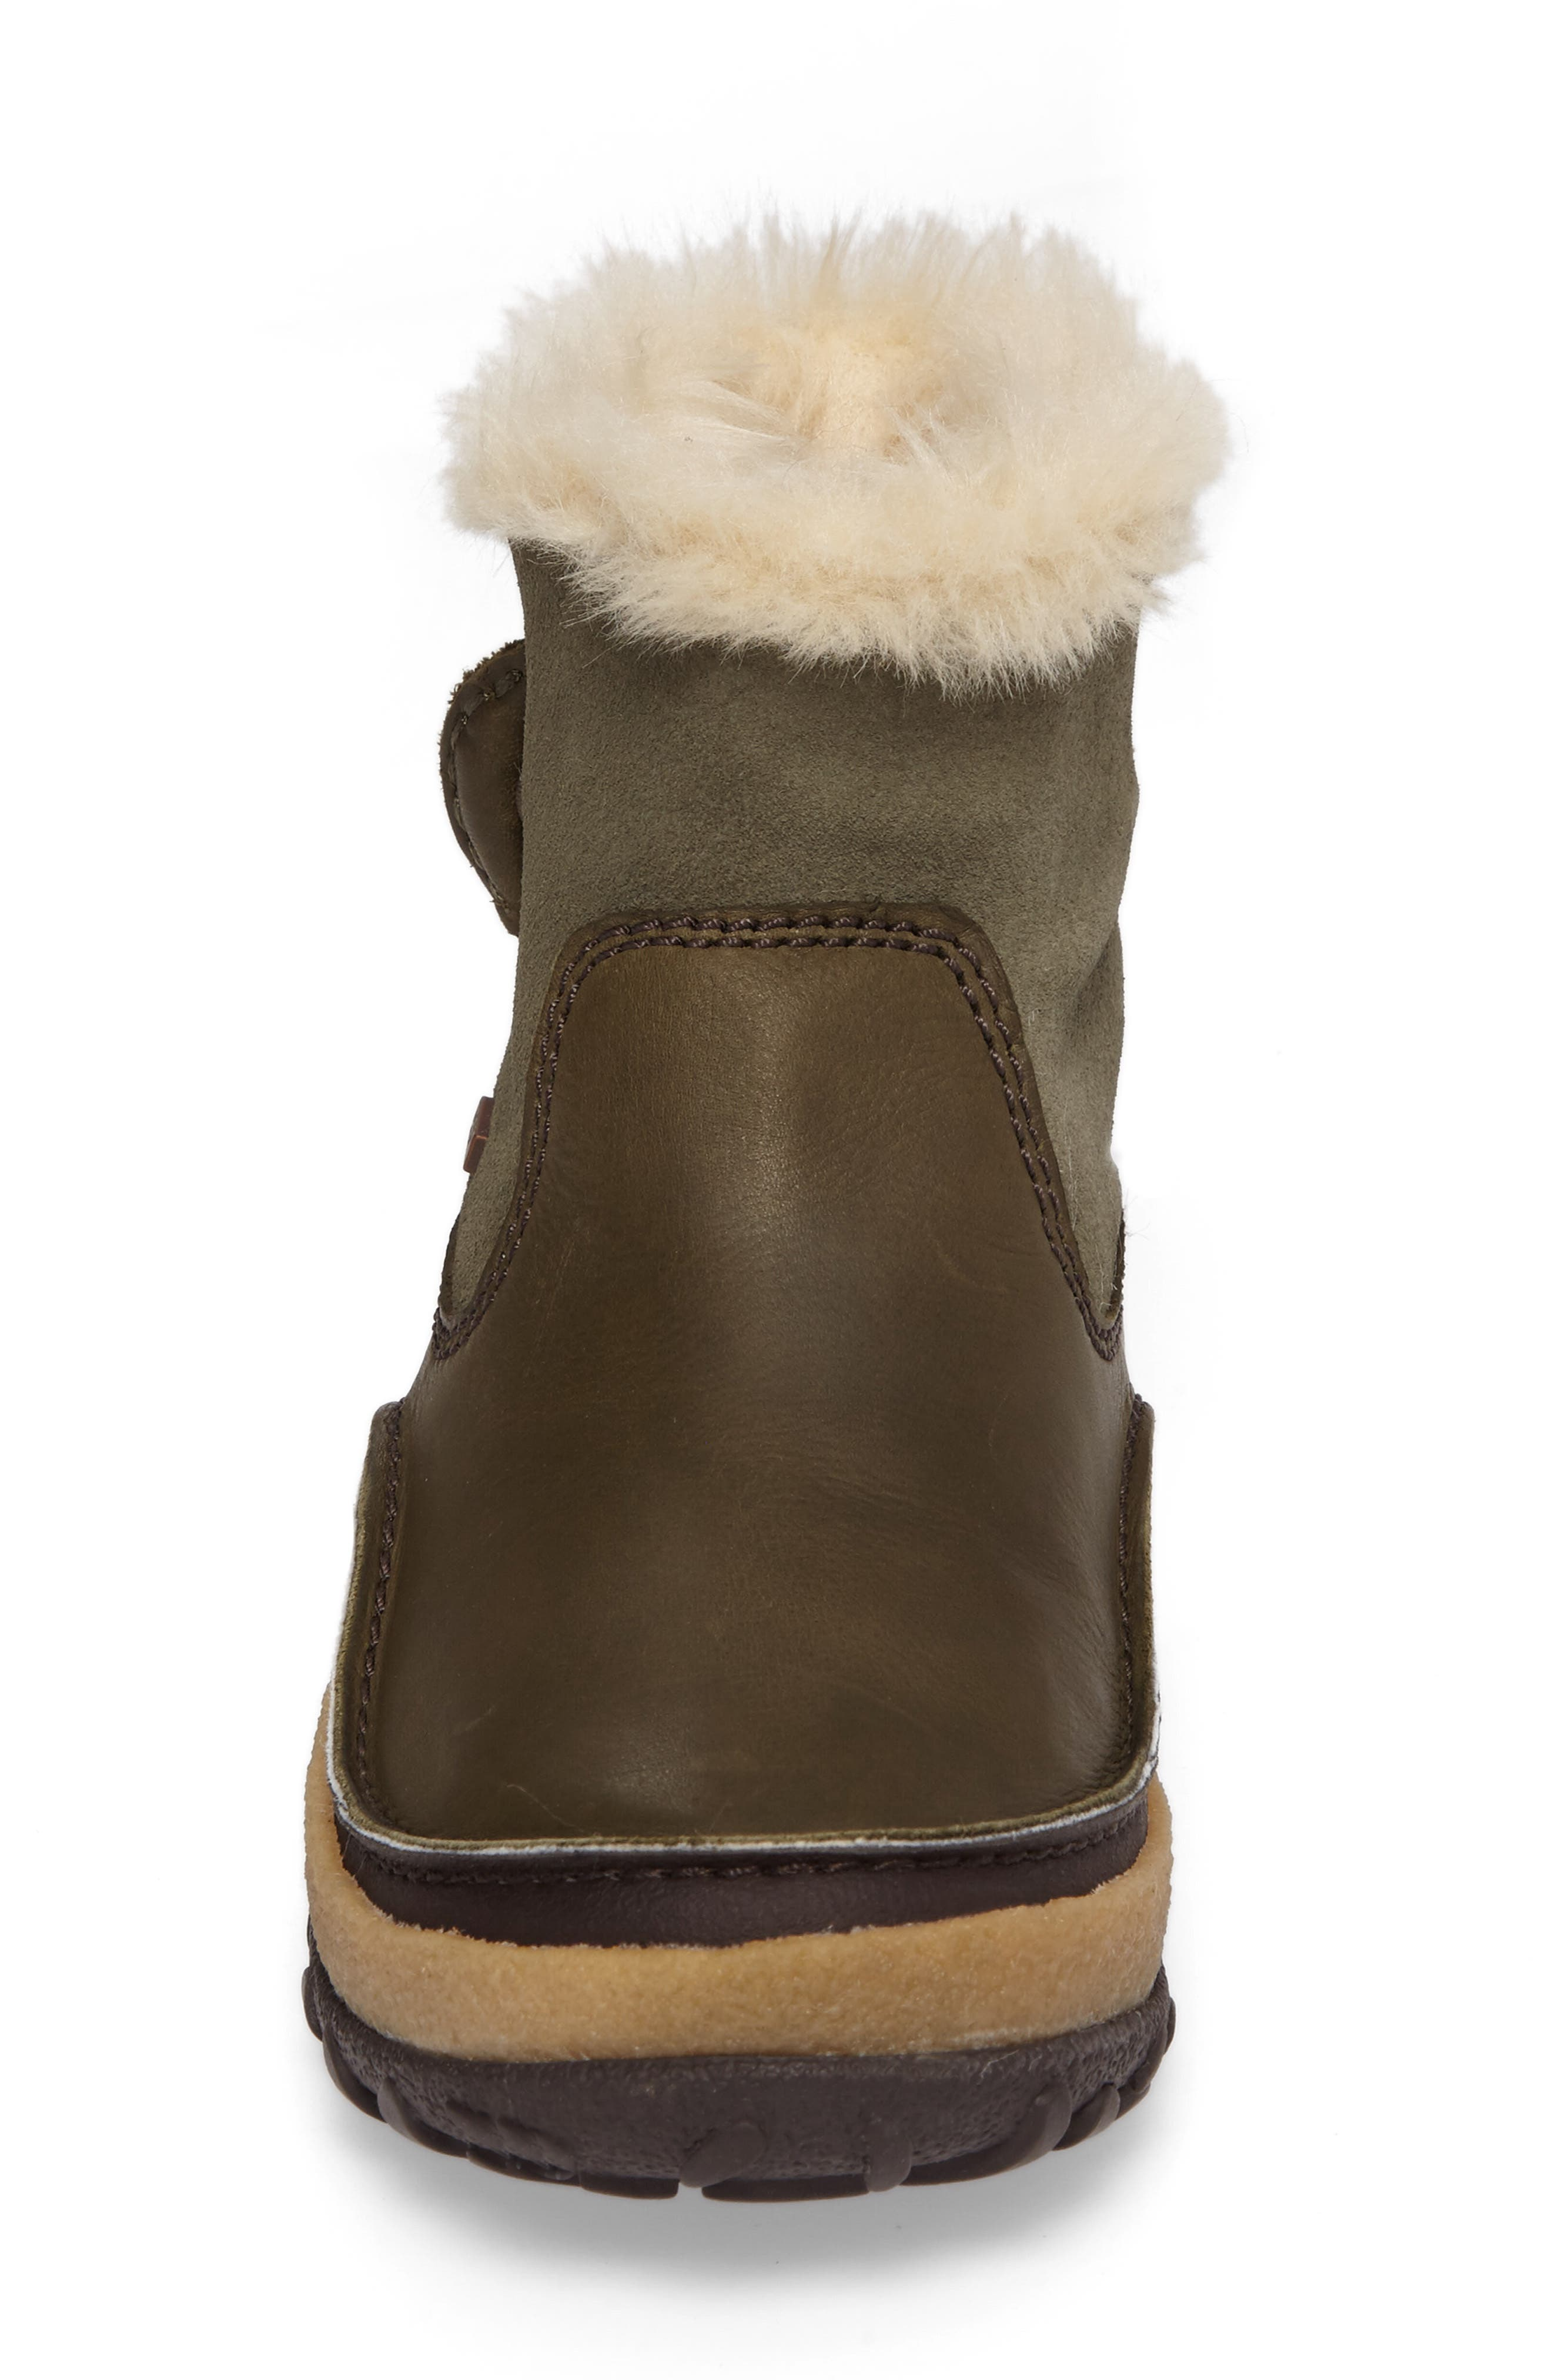 Tremblant Pull-On Polar Waterproof Bootie,                             Alternate thumbnail 16, color,